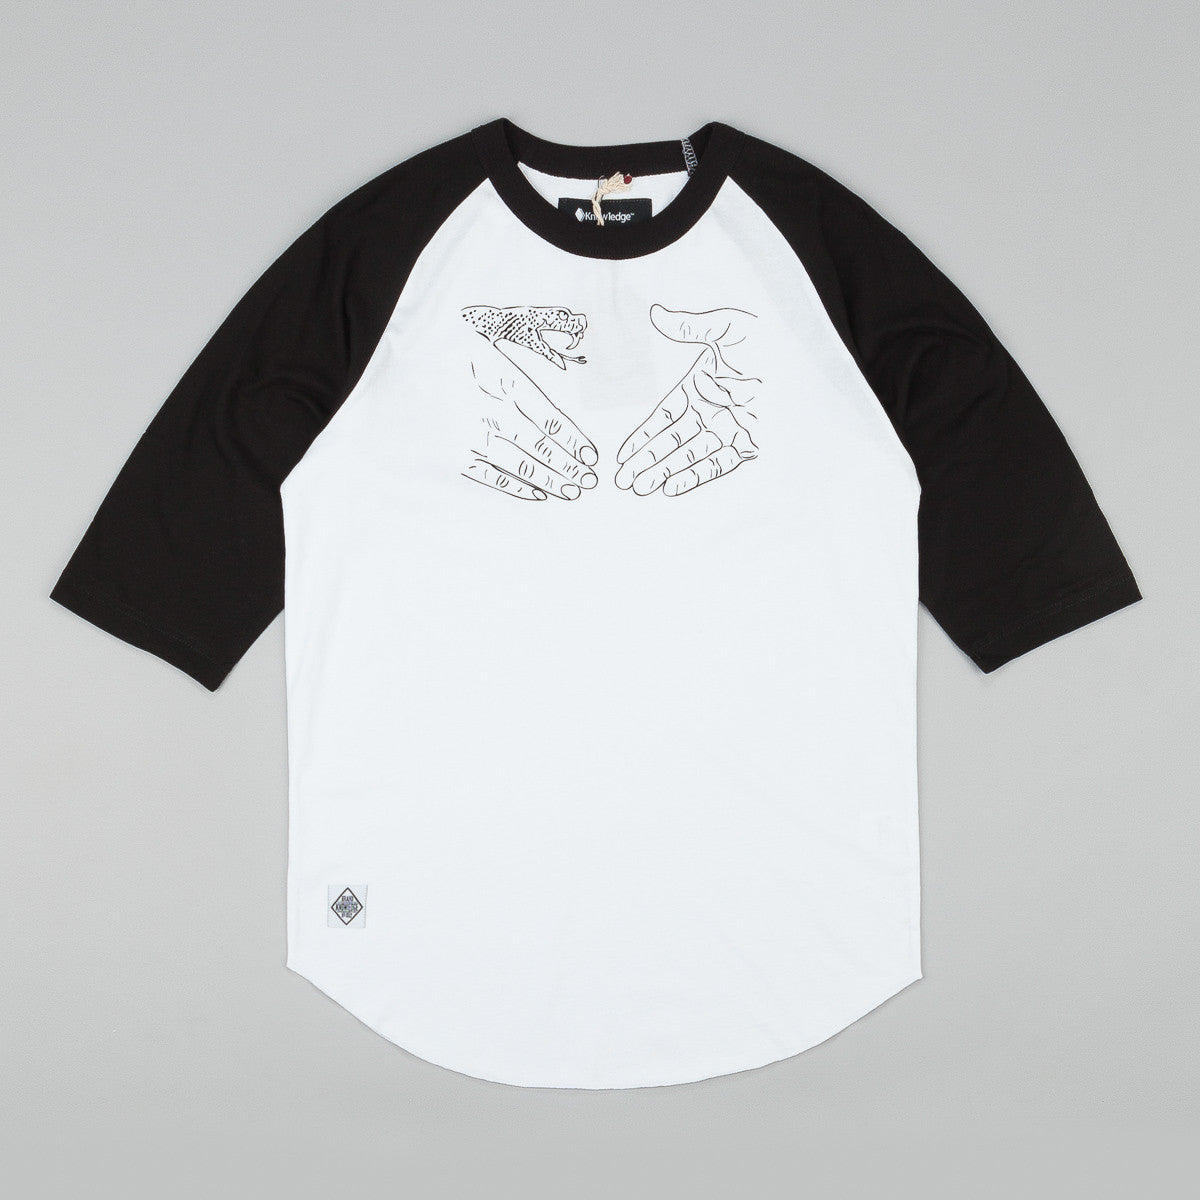 Doom Sayers X Know1edge Snake Shake 3/4 Sleeve Raglan T-Shirt